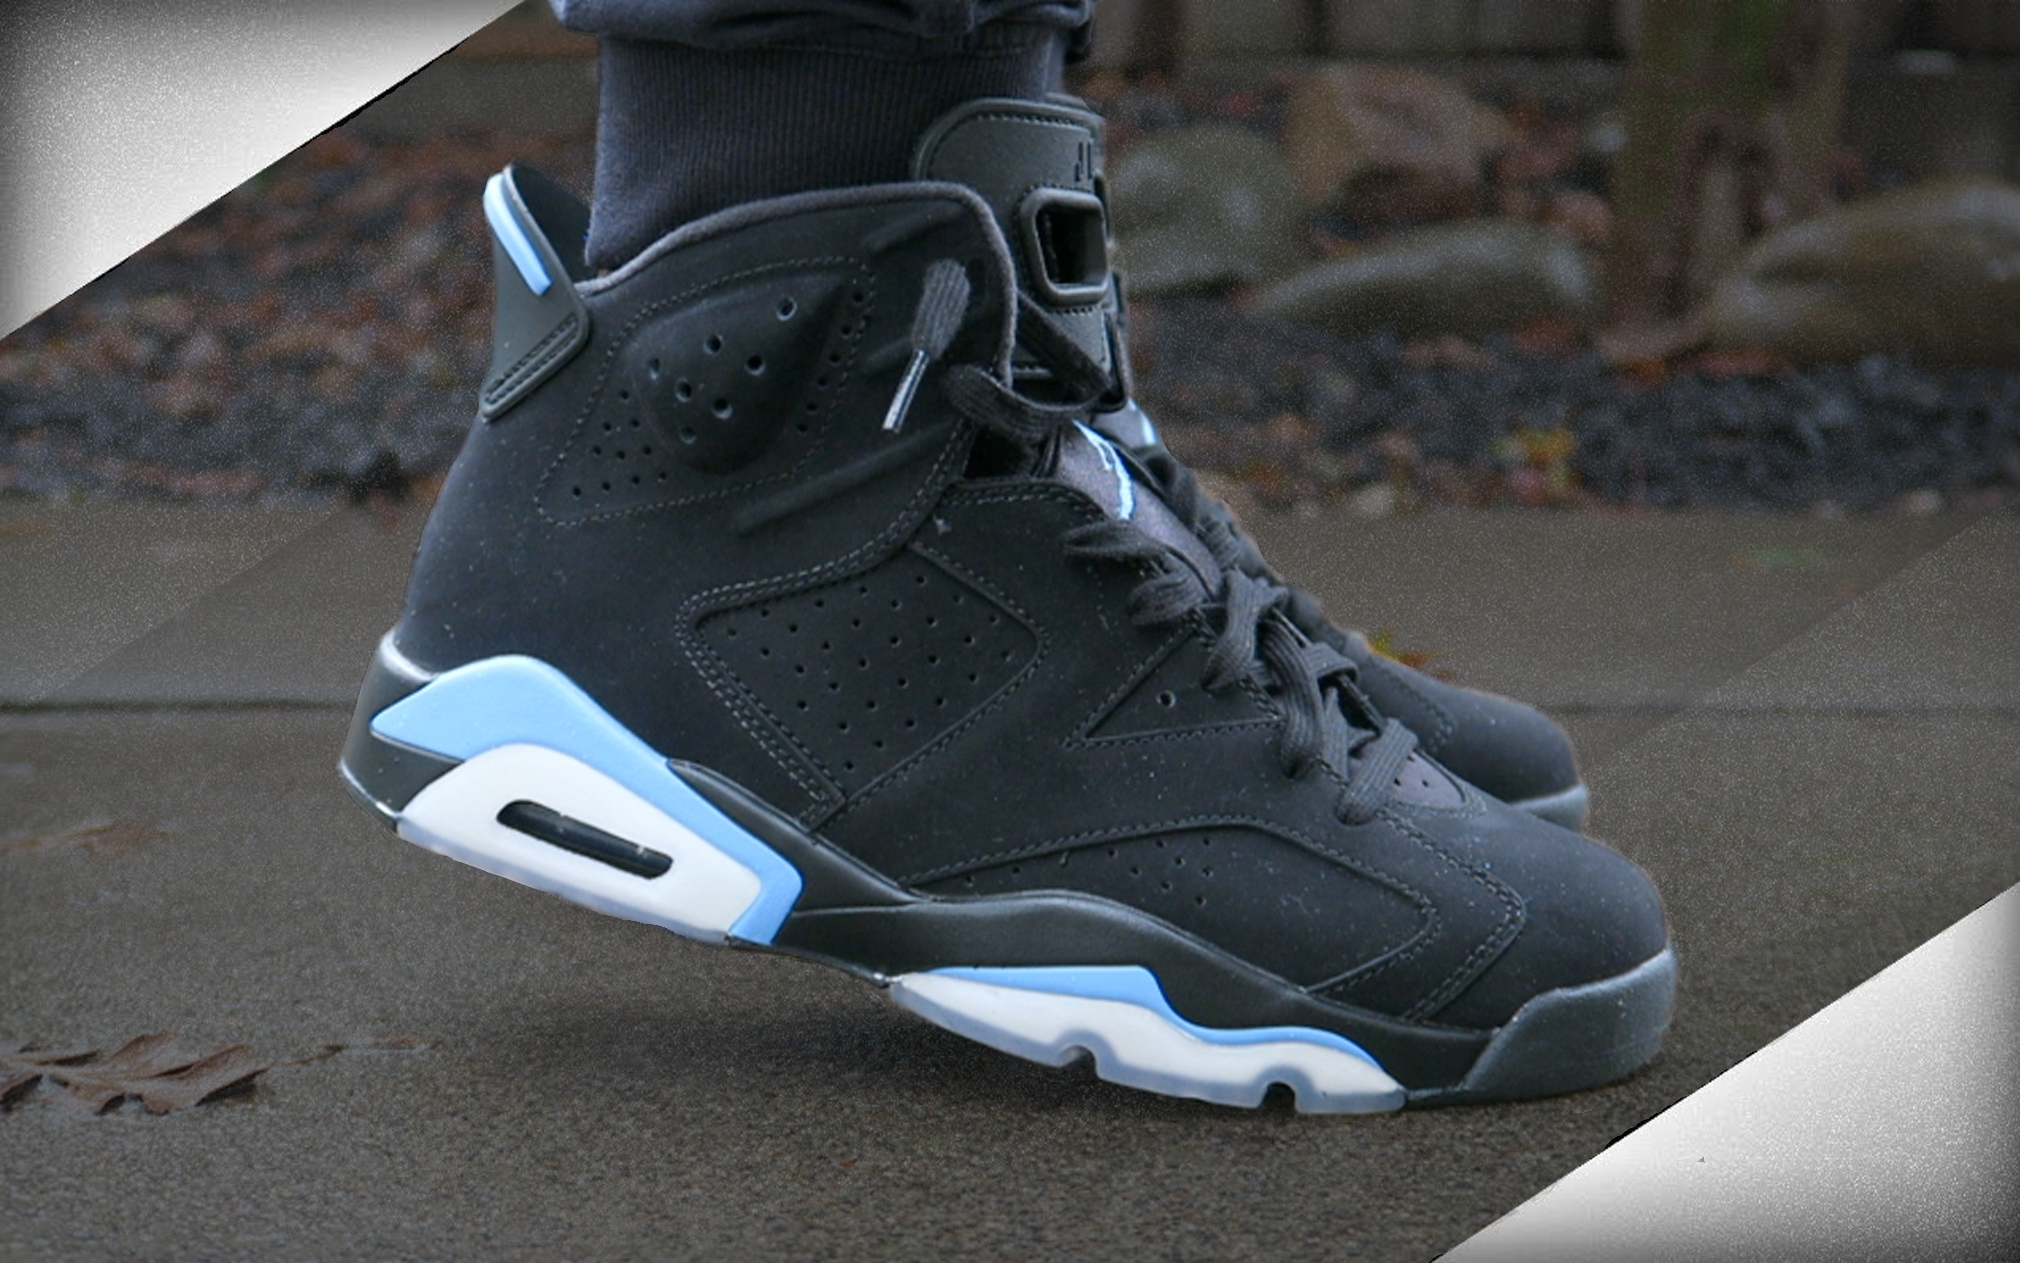 on sale 308a8 42db1 A Detailed Look at the Air Jordan 6 'UNC' - WearTesters